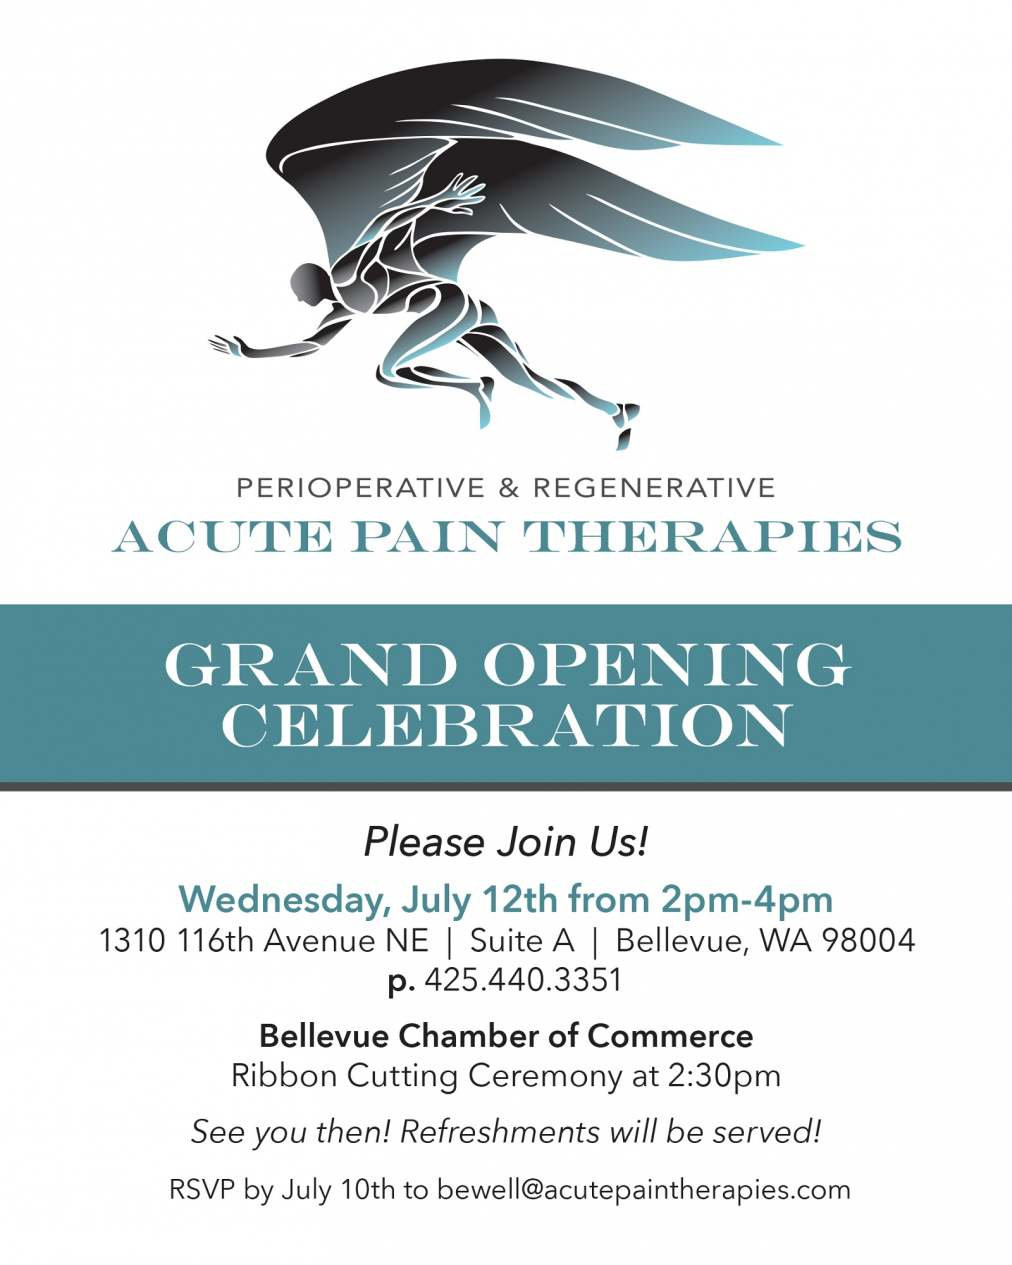 Acute Pain Therapies Celebrates Grand Opening in Bellevue, WA